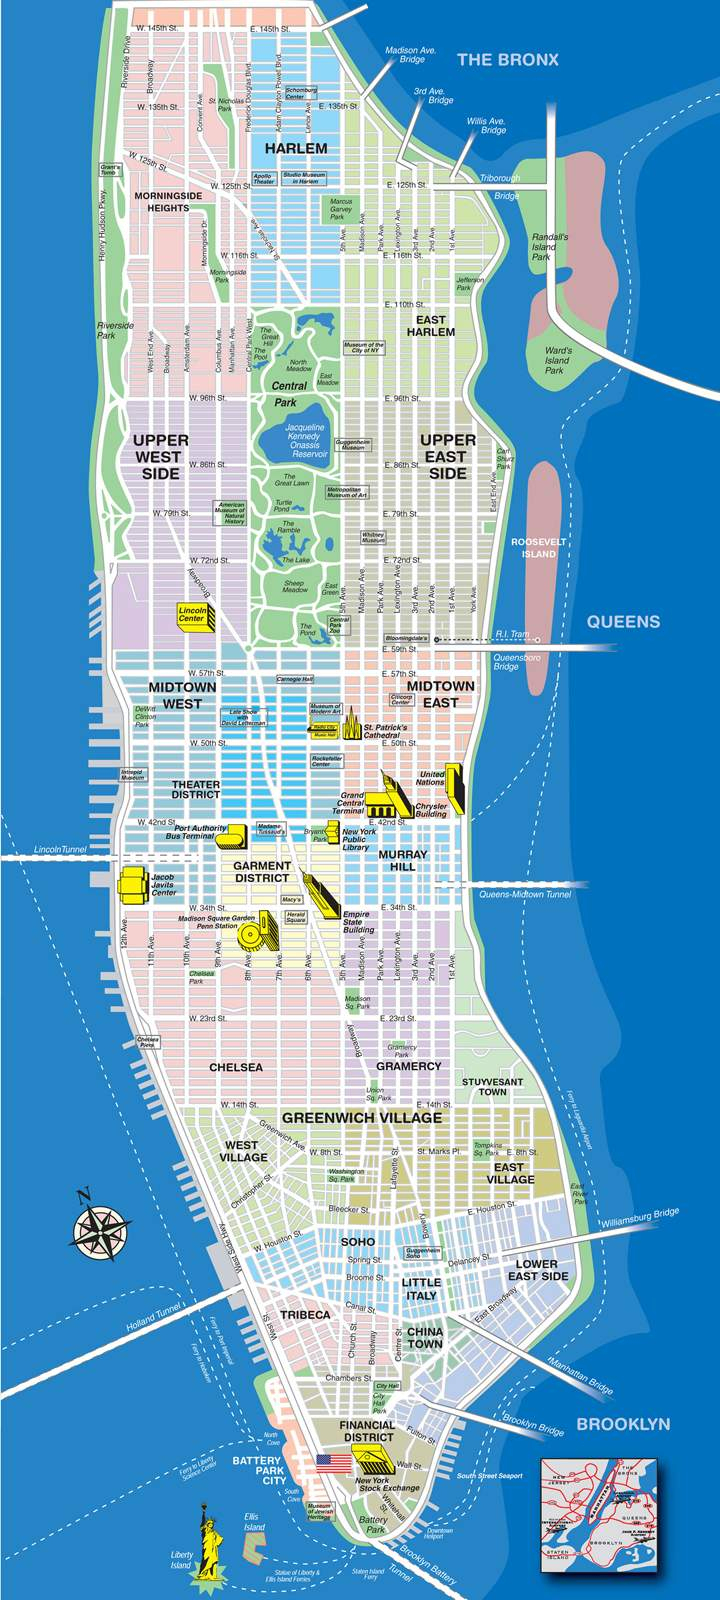 Large Manhattan Maps For Free Download And Print   High-Resolution - Printable Map Of New York City With Attractions